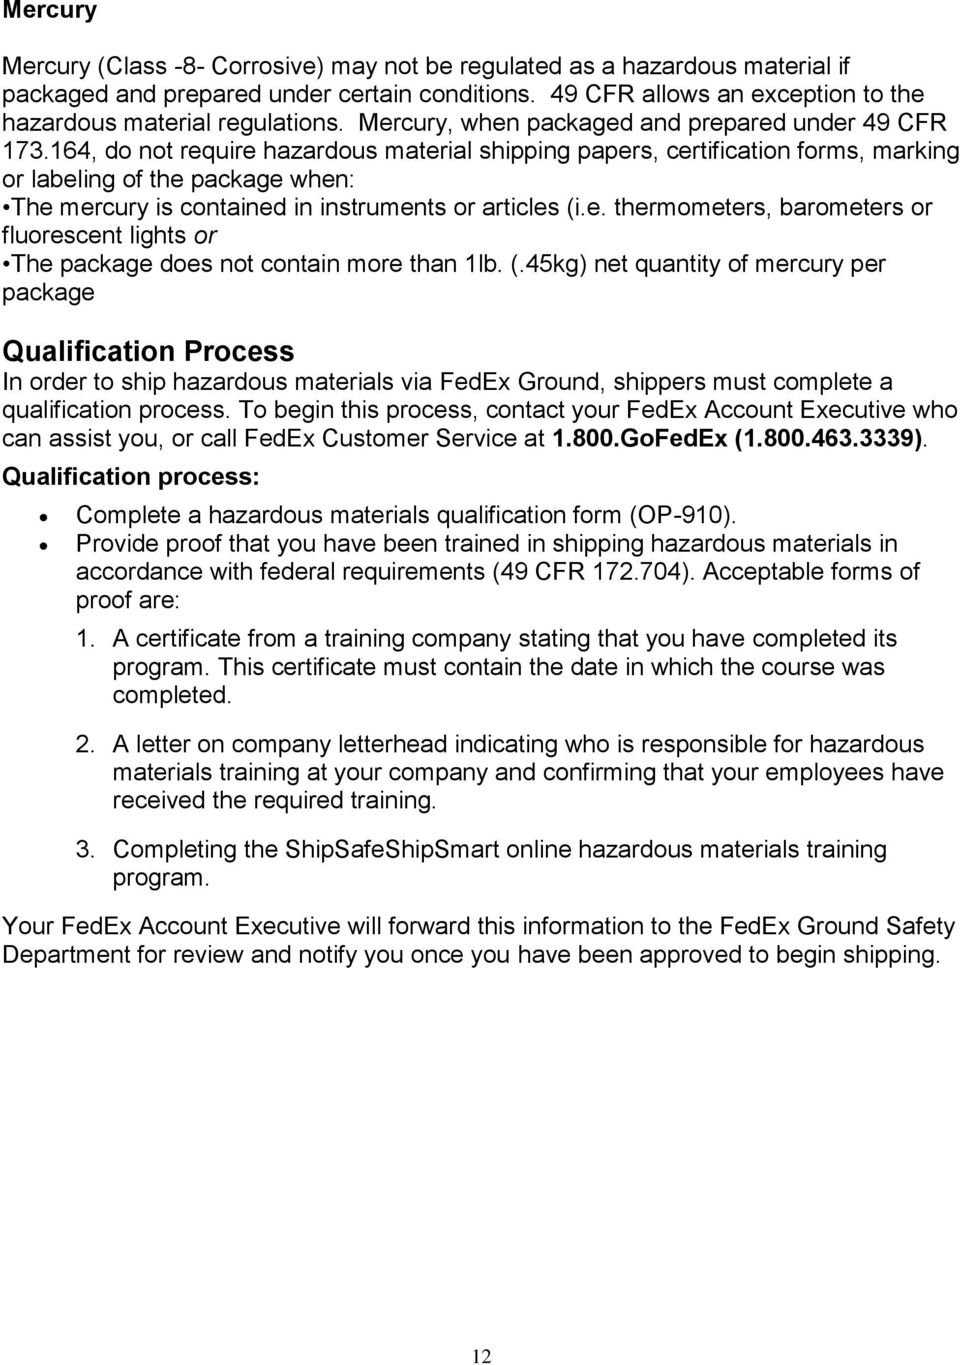 Table of contents topic page fedex ground prohibited 164 do not require hazardous material shipping papers certification forms marking or labeling yadclub Images